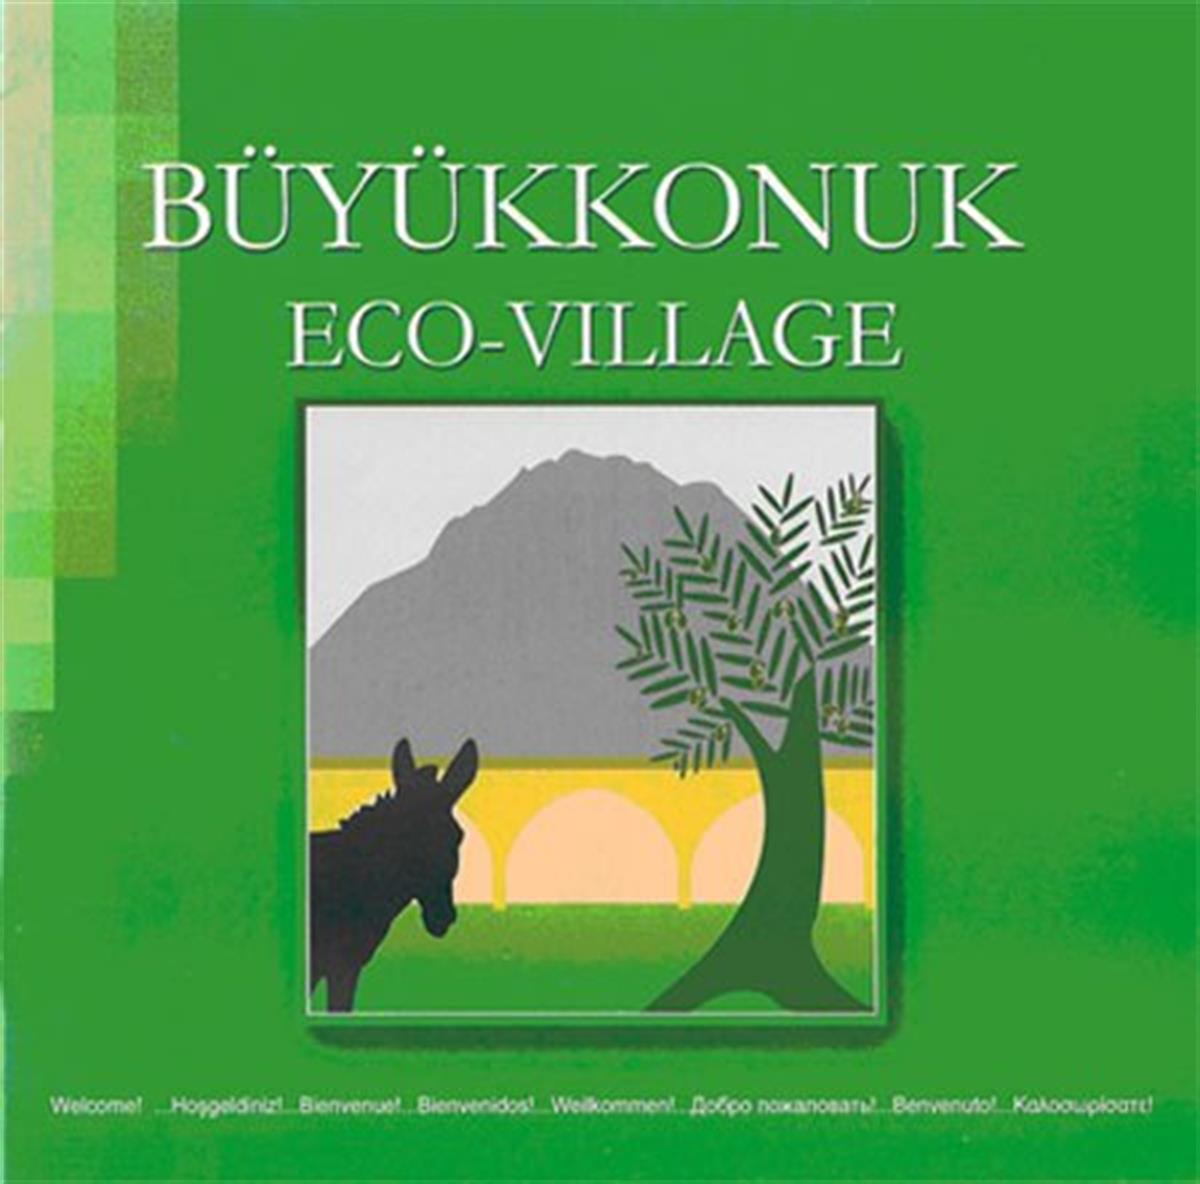 URDC'S RESEARCH & DEVELOPMENT PROJECT FOR BÜYÜKKONUK VILLAGE, N. CYPRUS, FUNDED BY BEARINGPOINT / EDGE